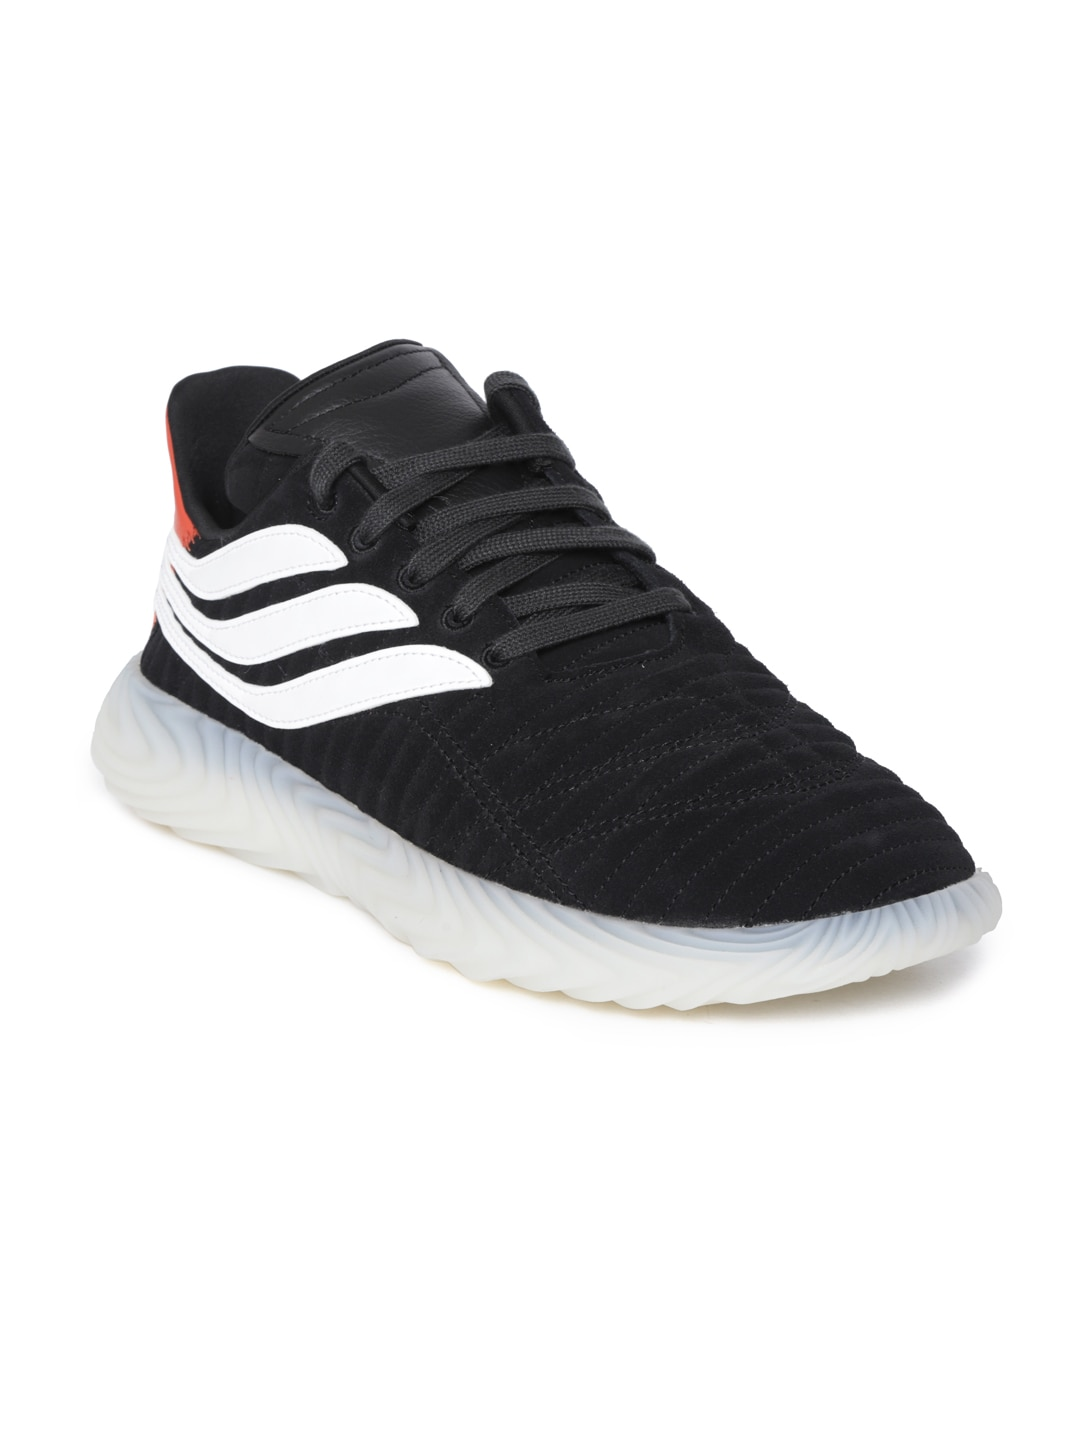 8014c82dede1 Adidas Shoes - Buy Adidas Shoes for Men   Women Online - Myntra